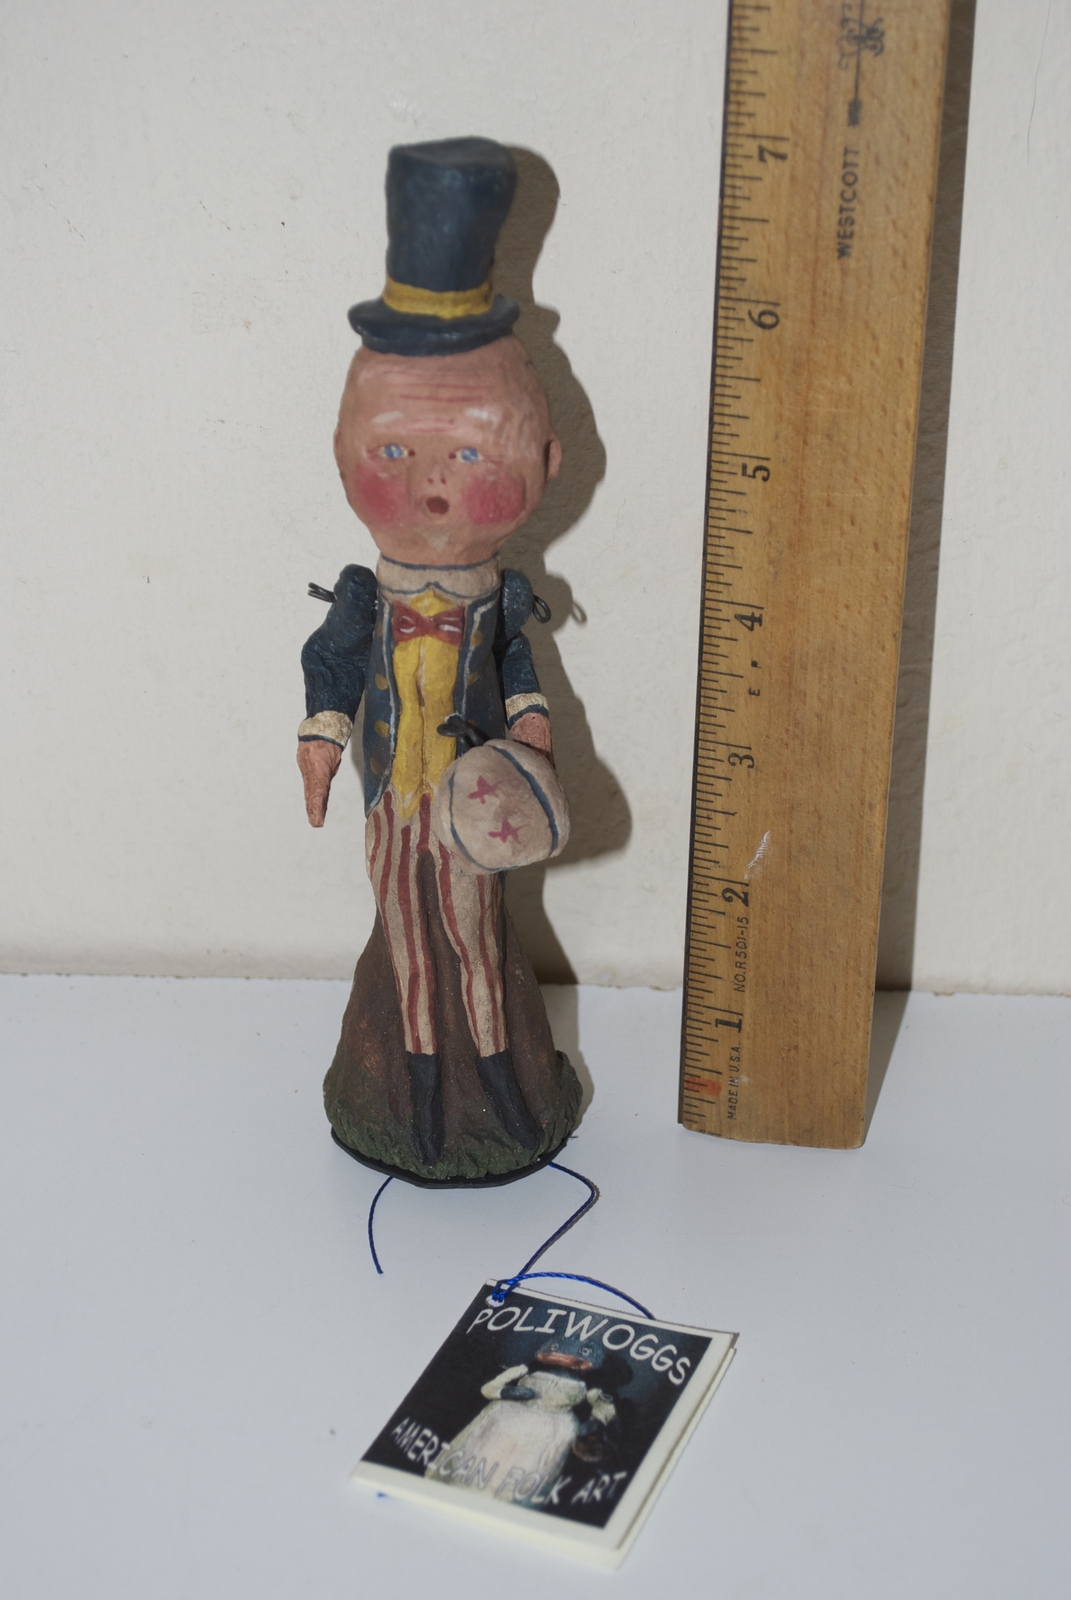 Poliwoggs American Folk Art Paper Maché 1998 Uncle Sam 4th of July Figurine